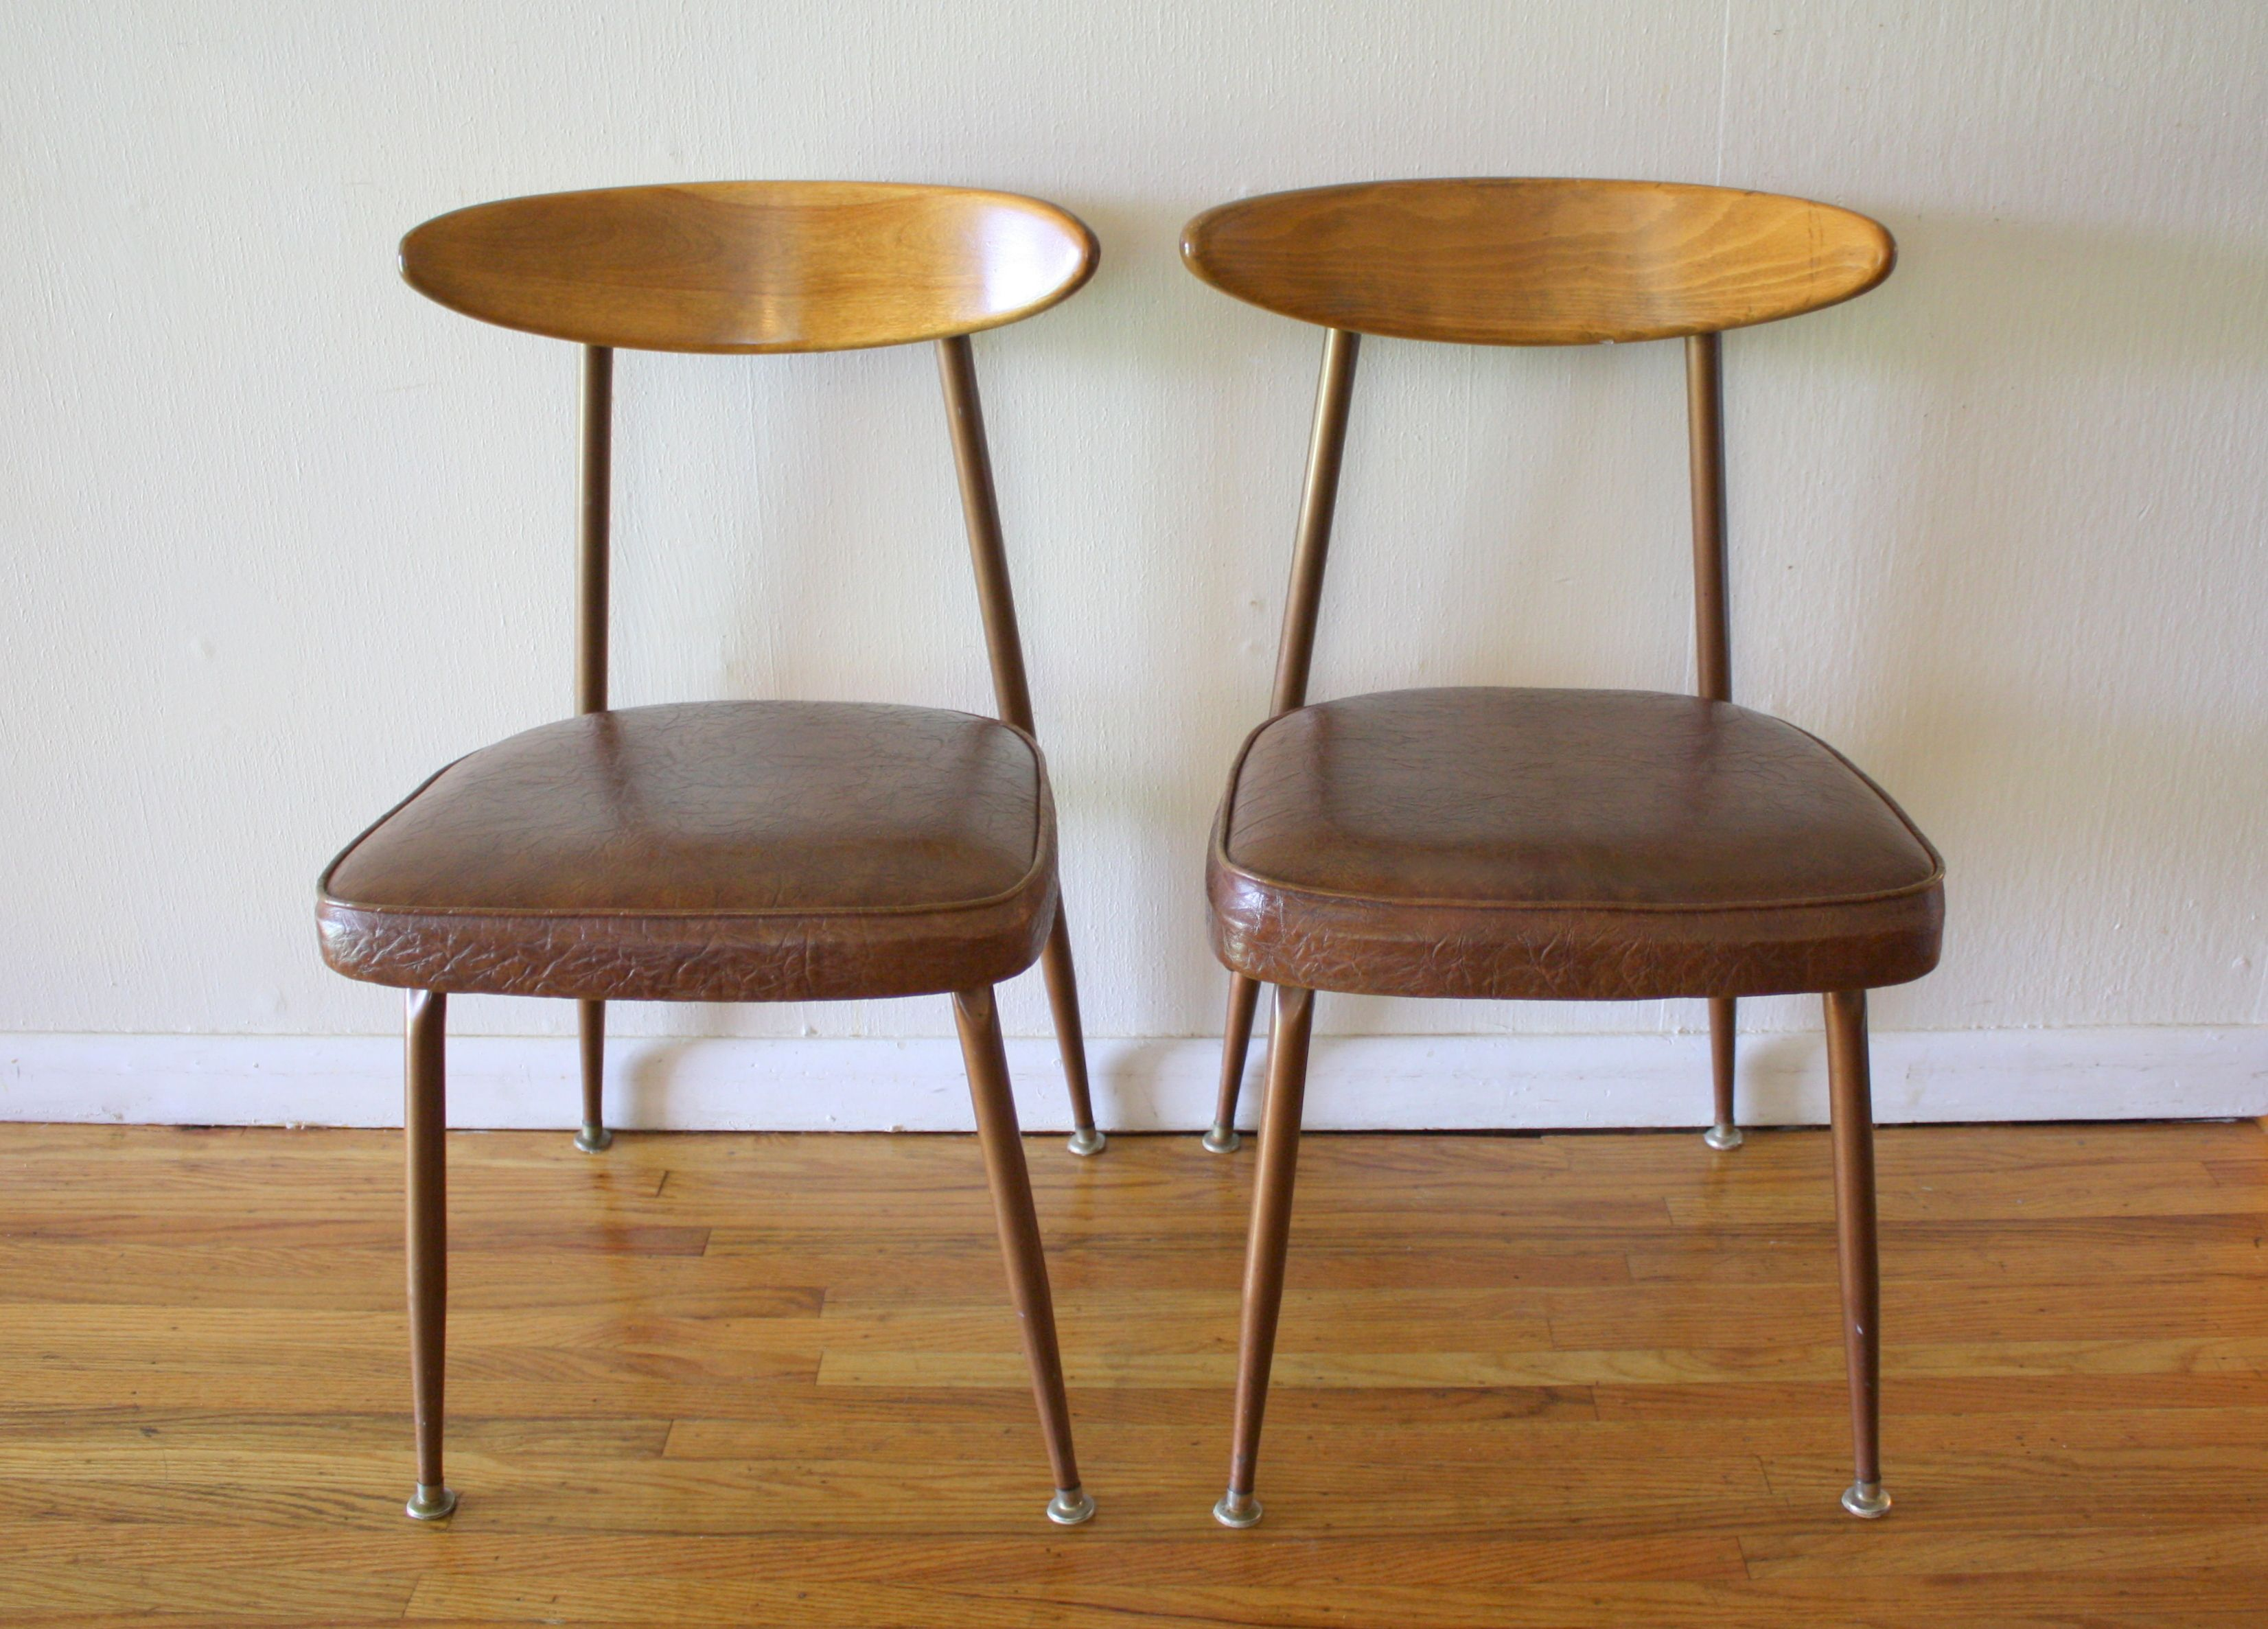 Fantastic This Is A Pair Of Mid Century Modern Chairs By Viko They Machost Co Dining Chair Design Ideas Machostcouk